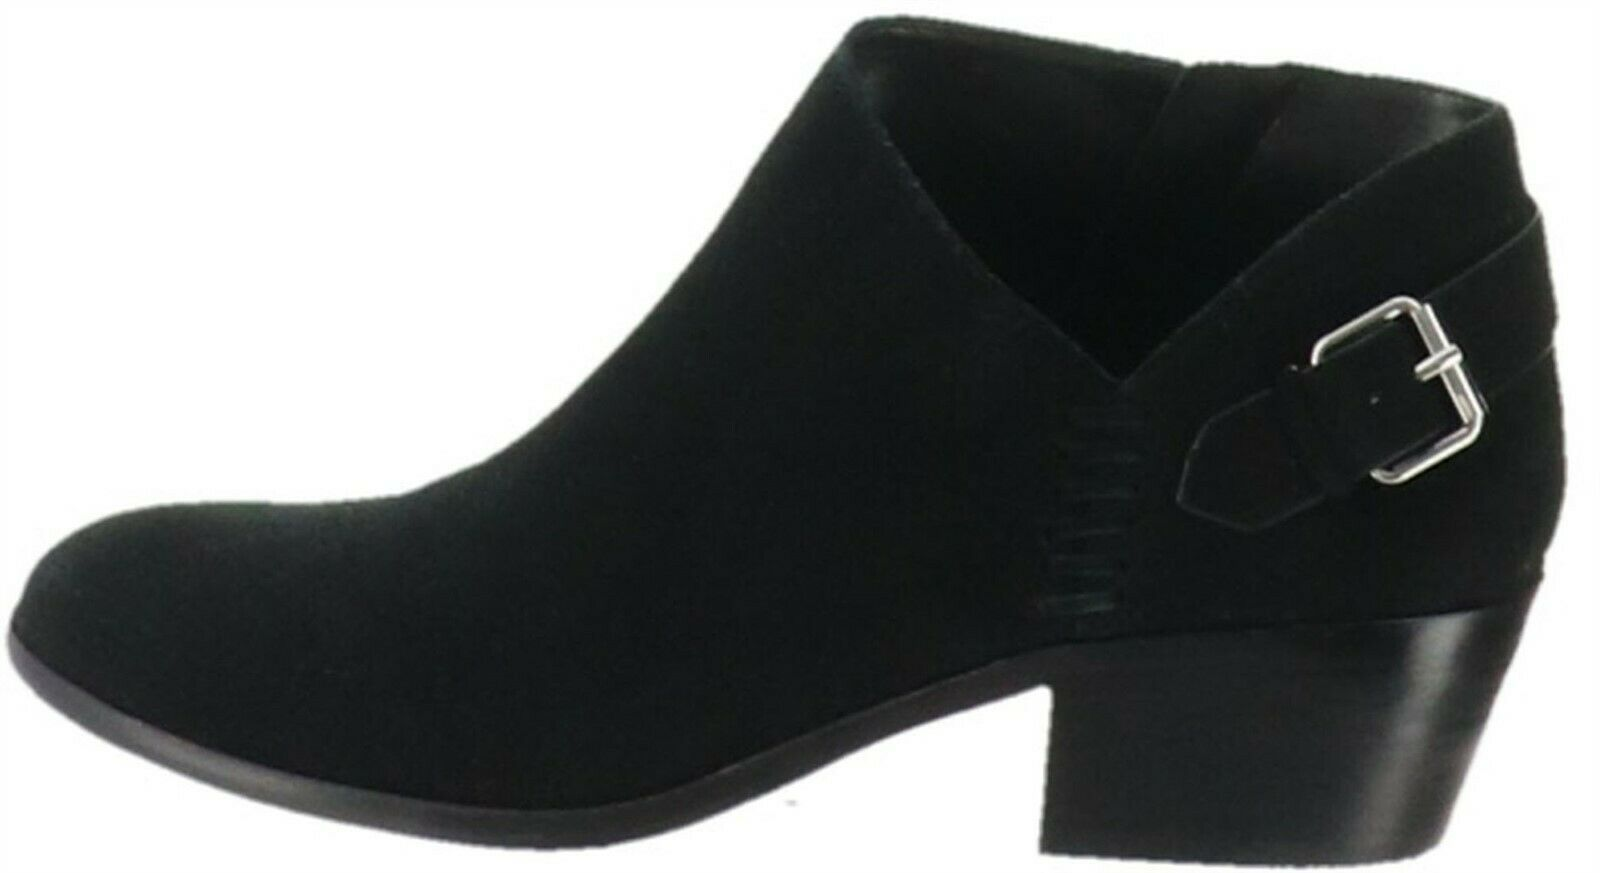 Primary image for Vince Camuto Suede Booties Buckle Parveen Black 6M NEW A311049